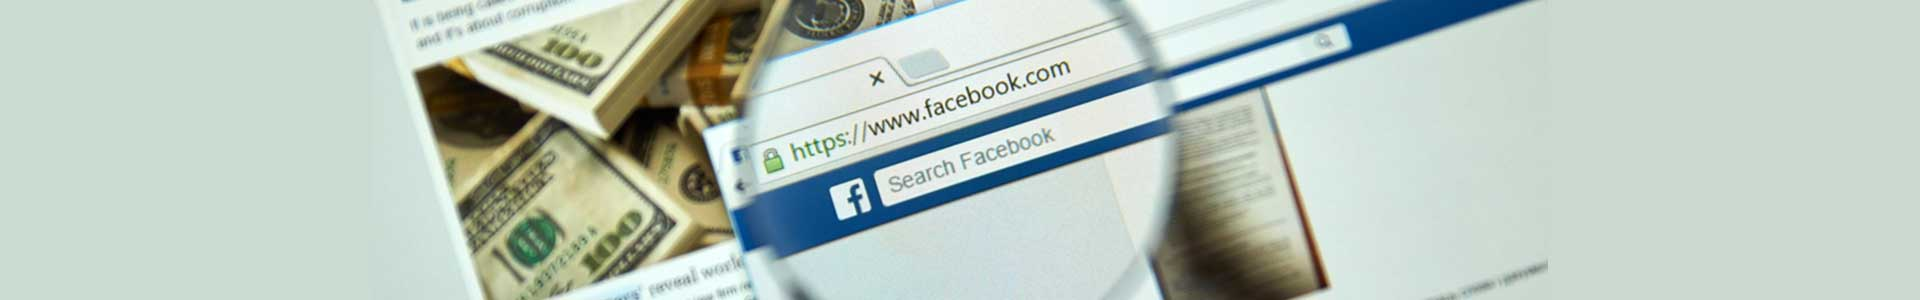 spot fake facebook profile